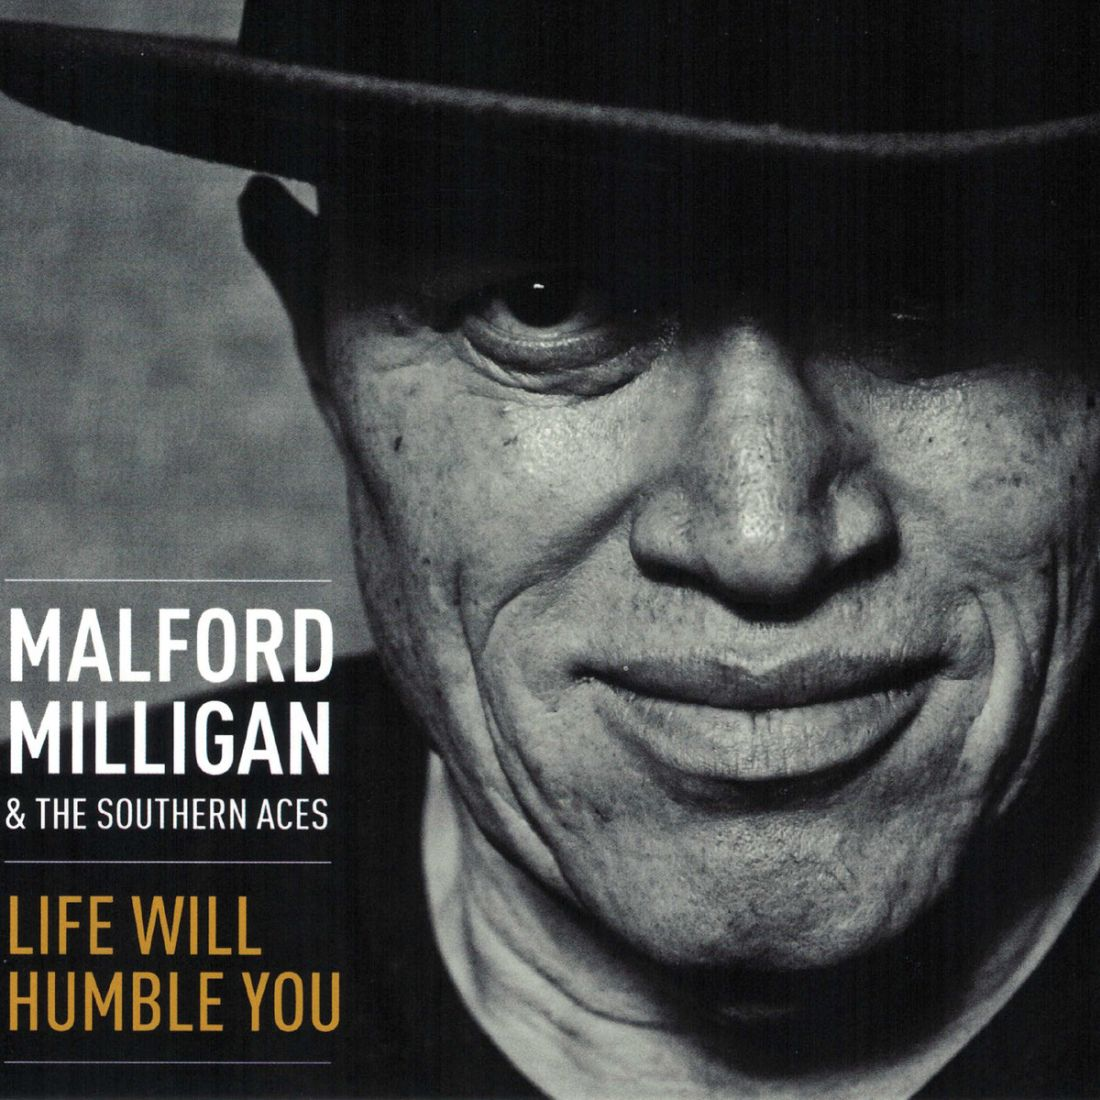 malford-milligan-the-southern-aces-life-will-humble-you